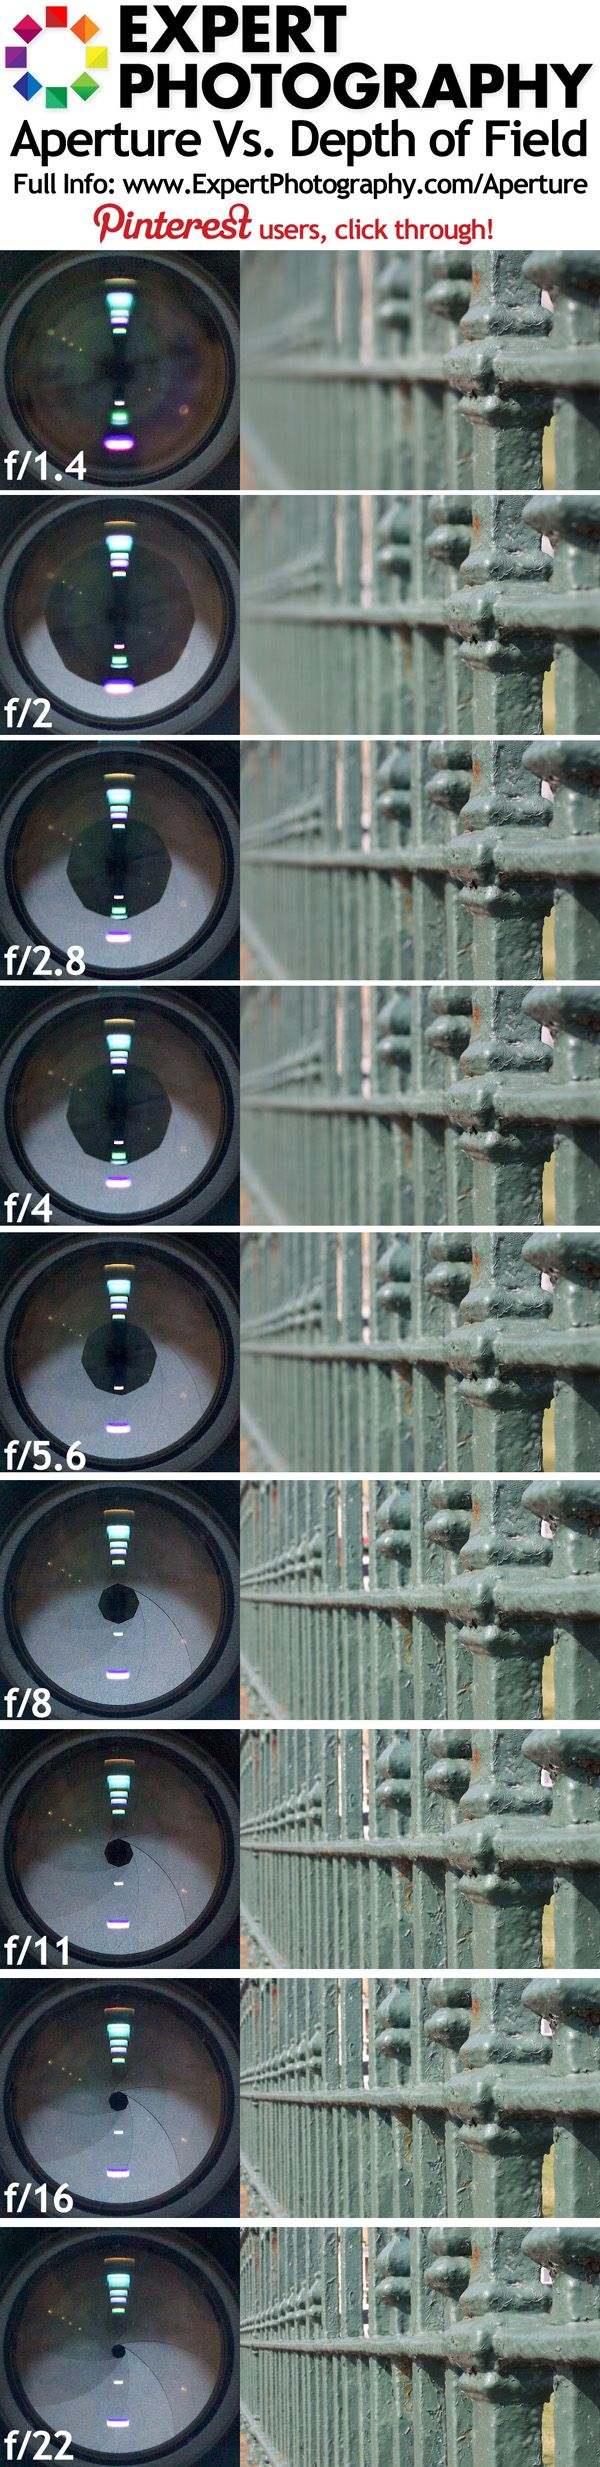 Aperture Vs. Depth of Field Visual Guide » Expert Photography